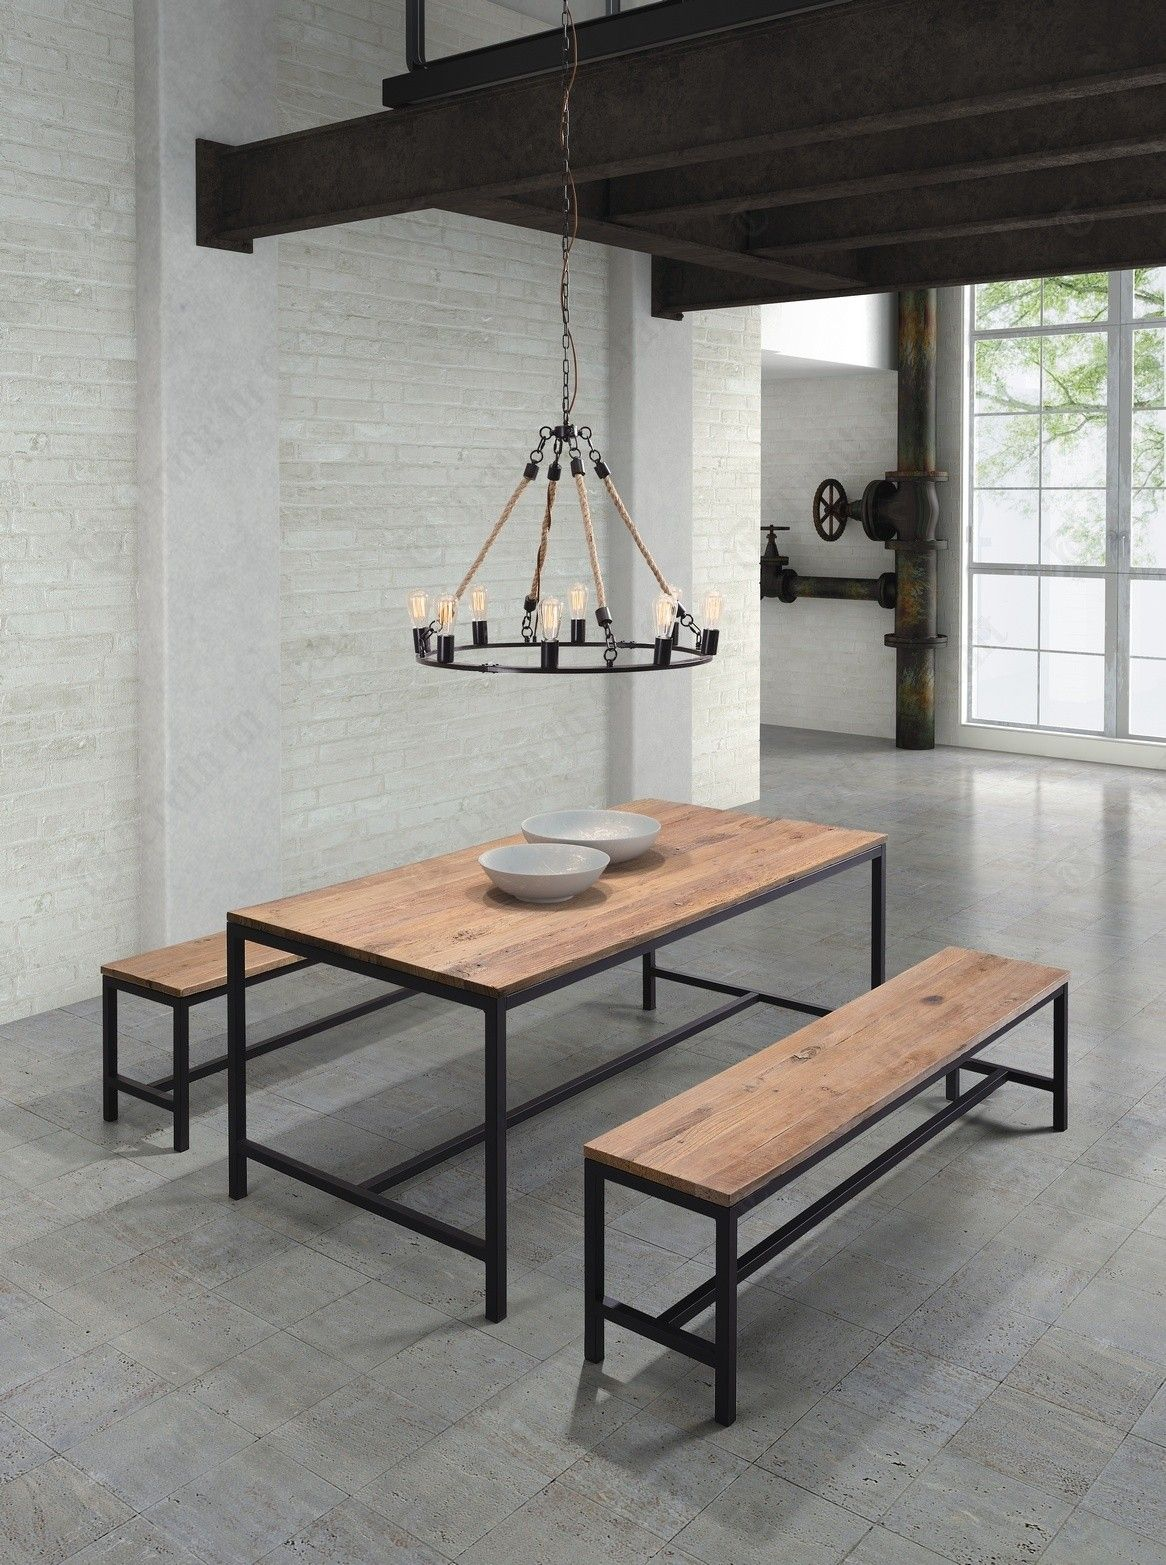 Dining Room Delightful Furniture For Vintage Dining  Room Design Using Round Black Metal Candle Chandelier Over Dining Table Including Rectangular Rustic   .